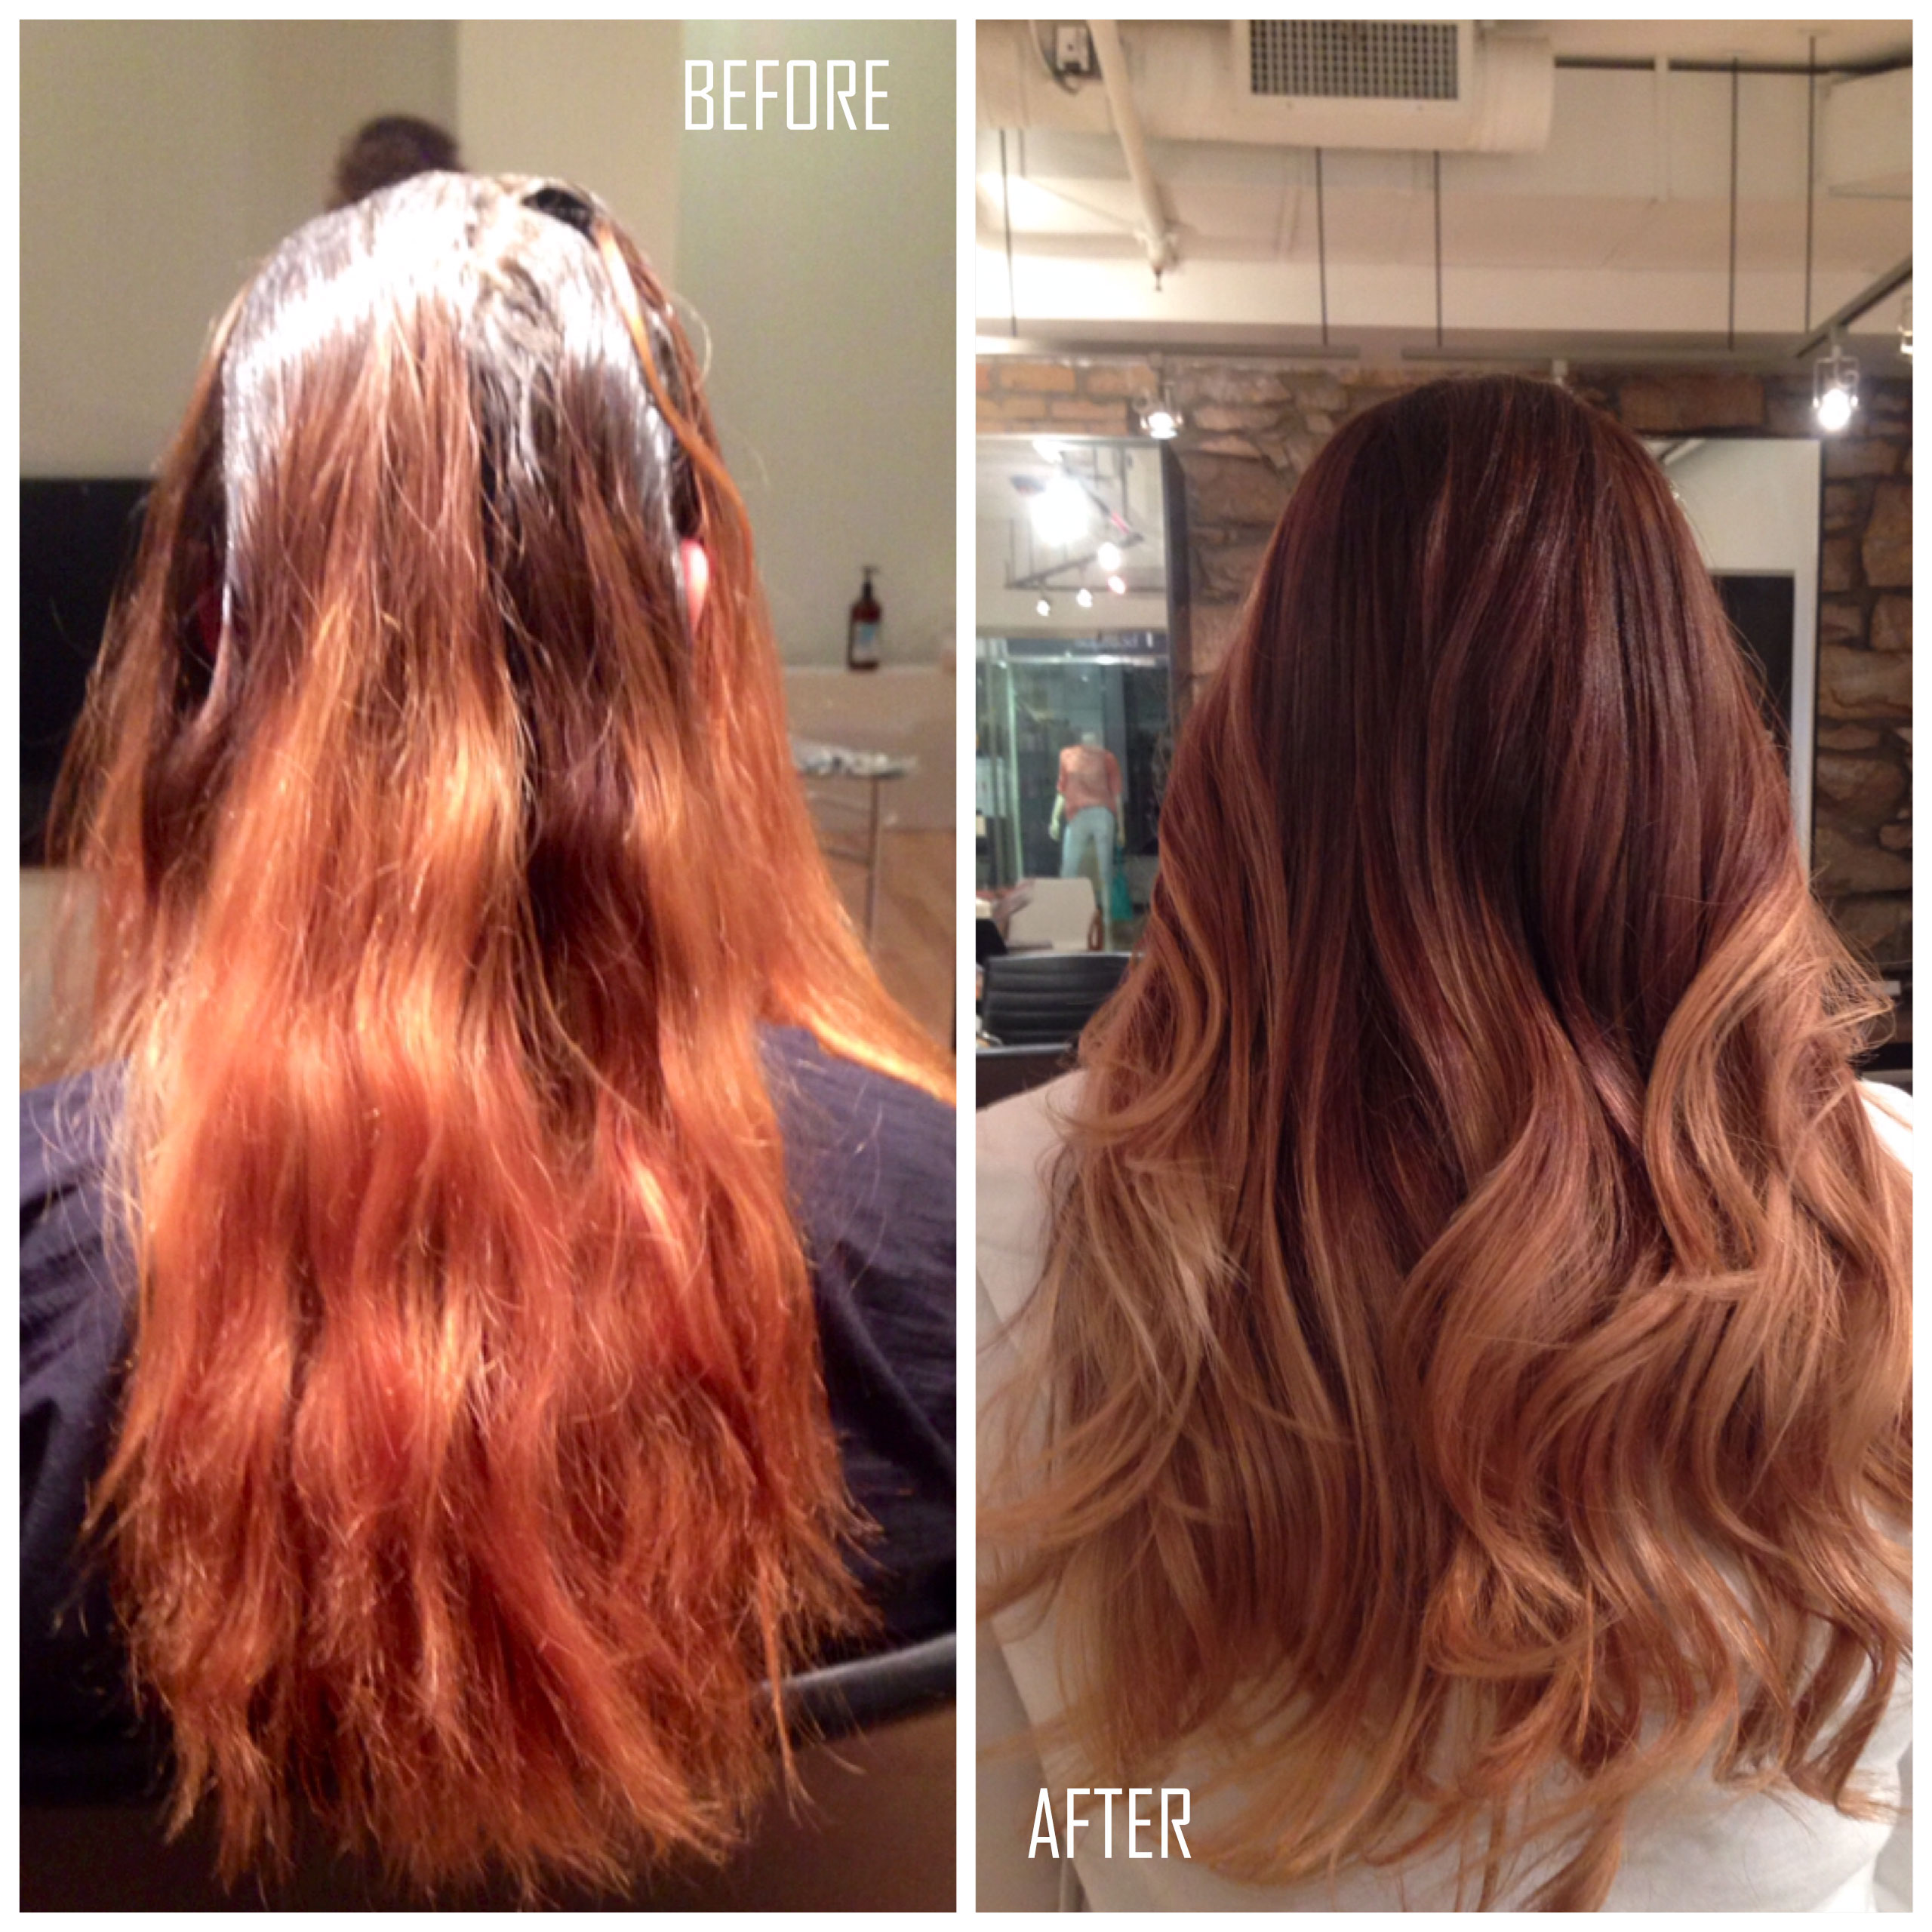 HOW-TO: Create a Blended Ombre out of a Brassy & Patchy Mess